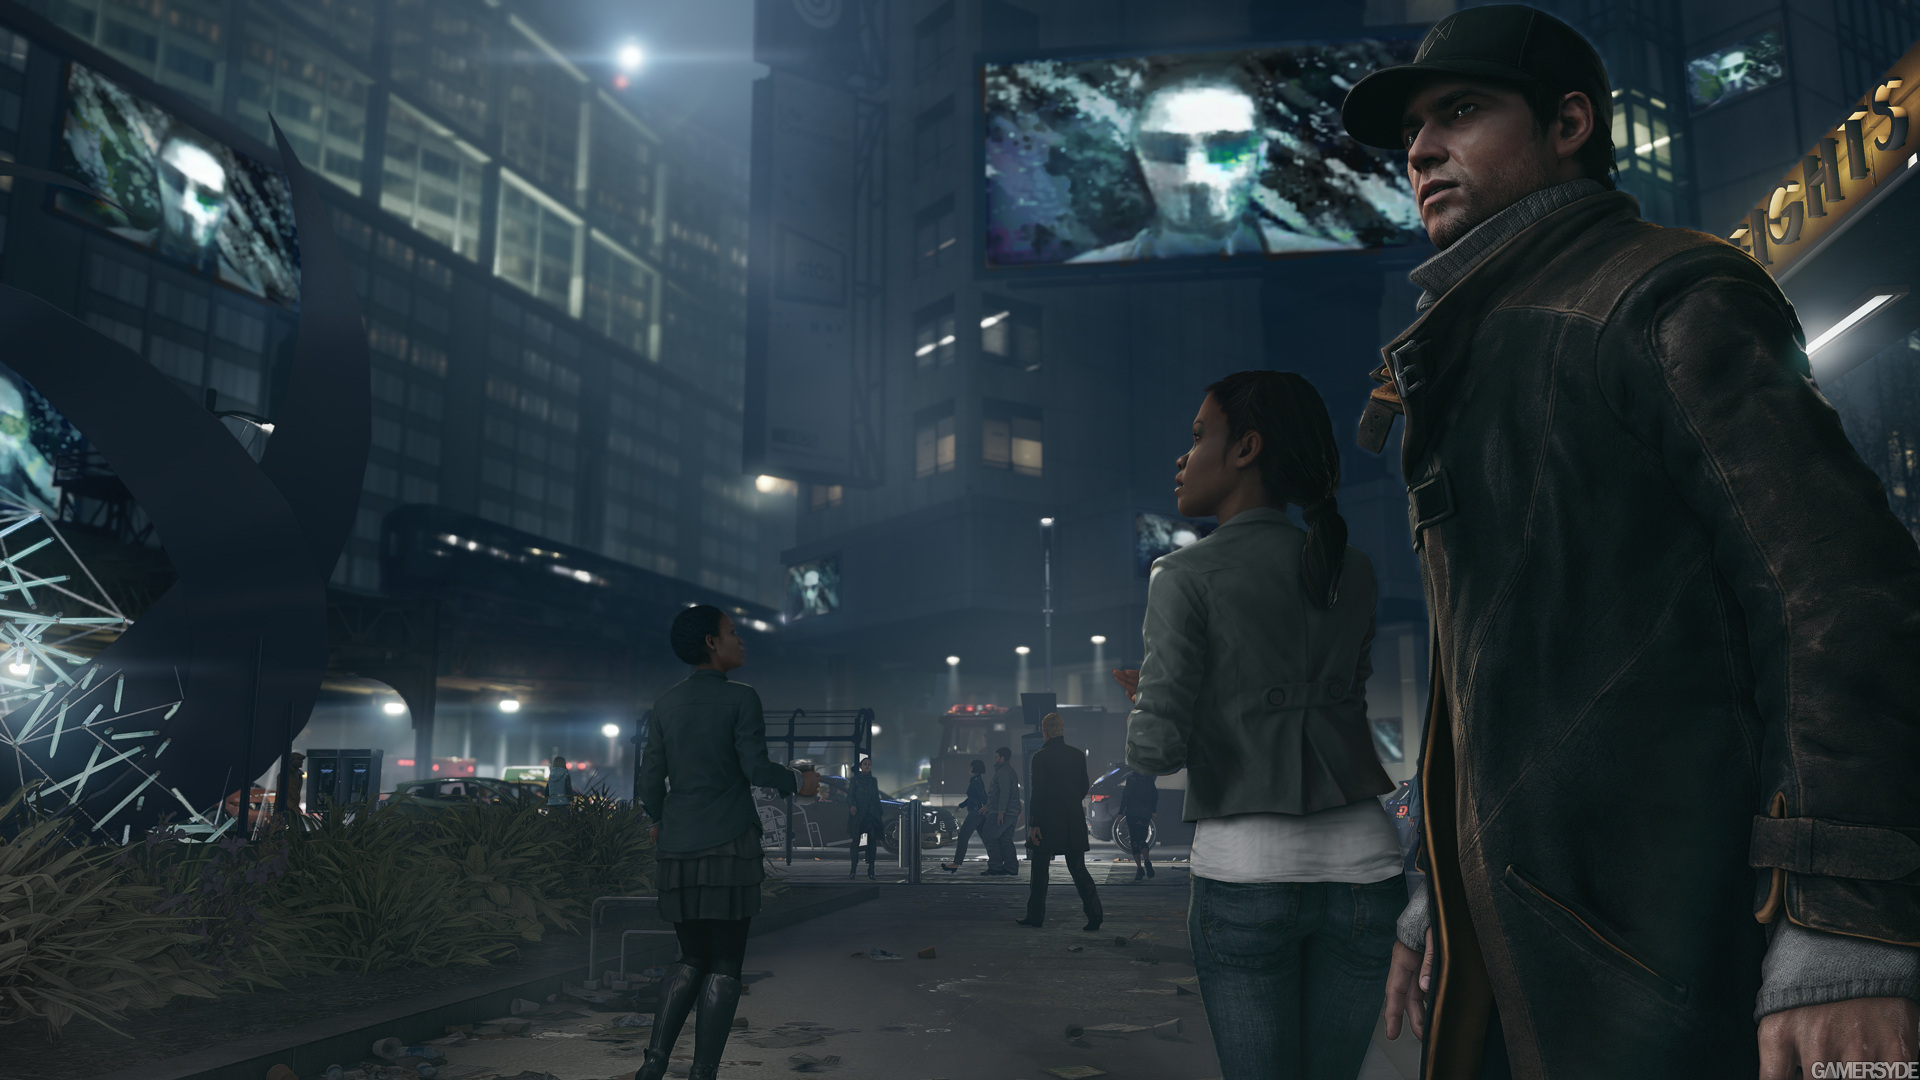 image_watch_dogs-22912-2527_0001